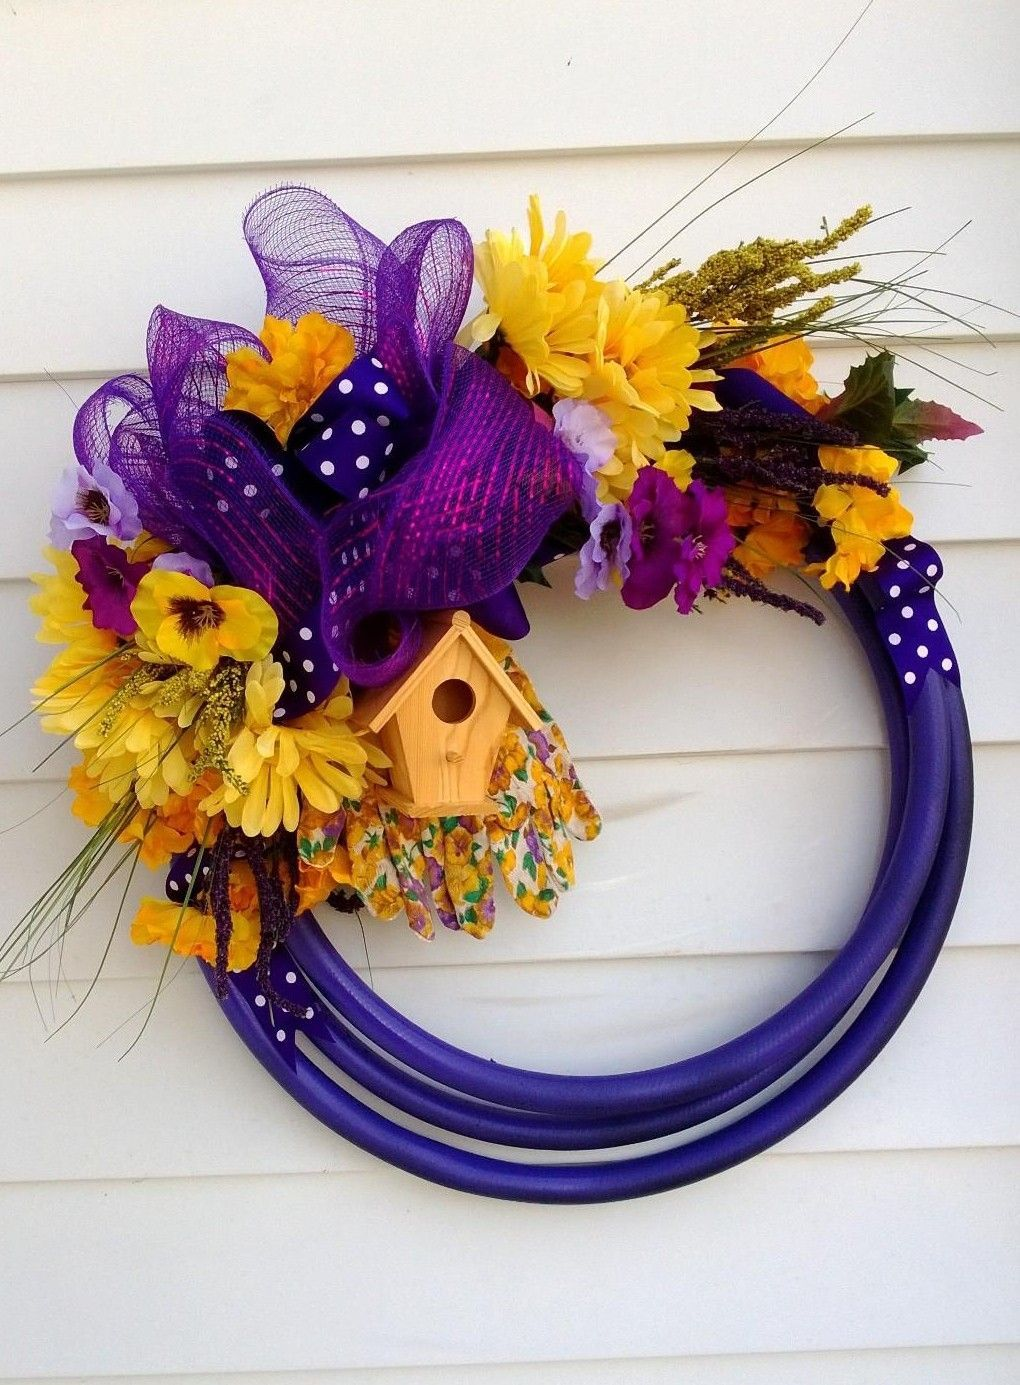 A Purple Garden Hose Wreath. Donated For A Garden Club Fundraiser.